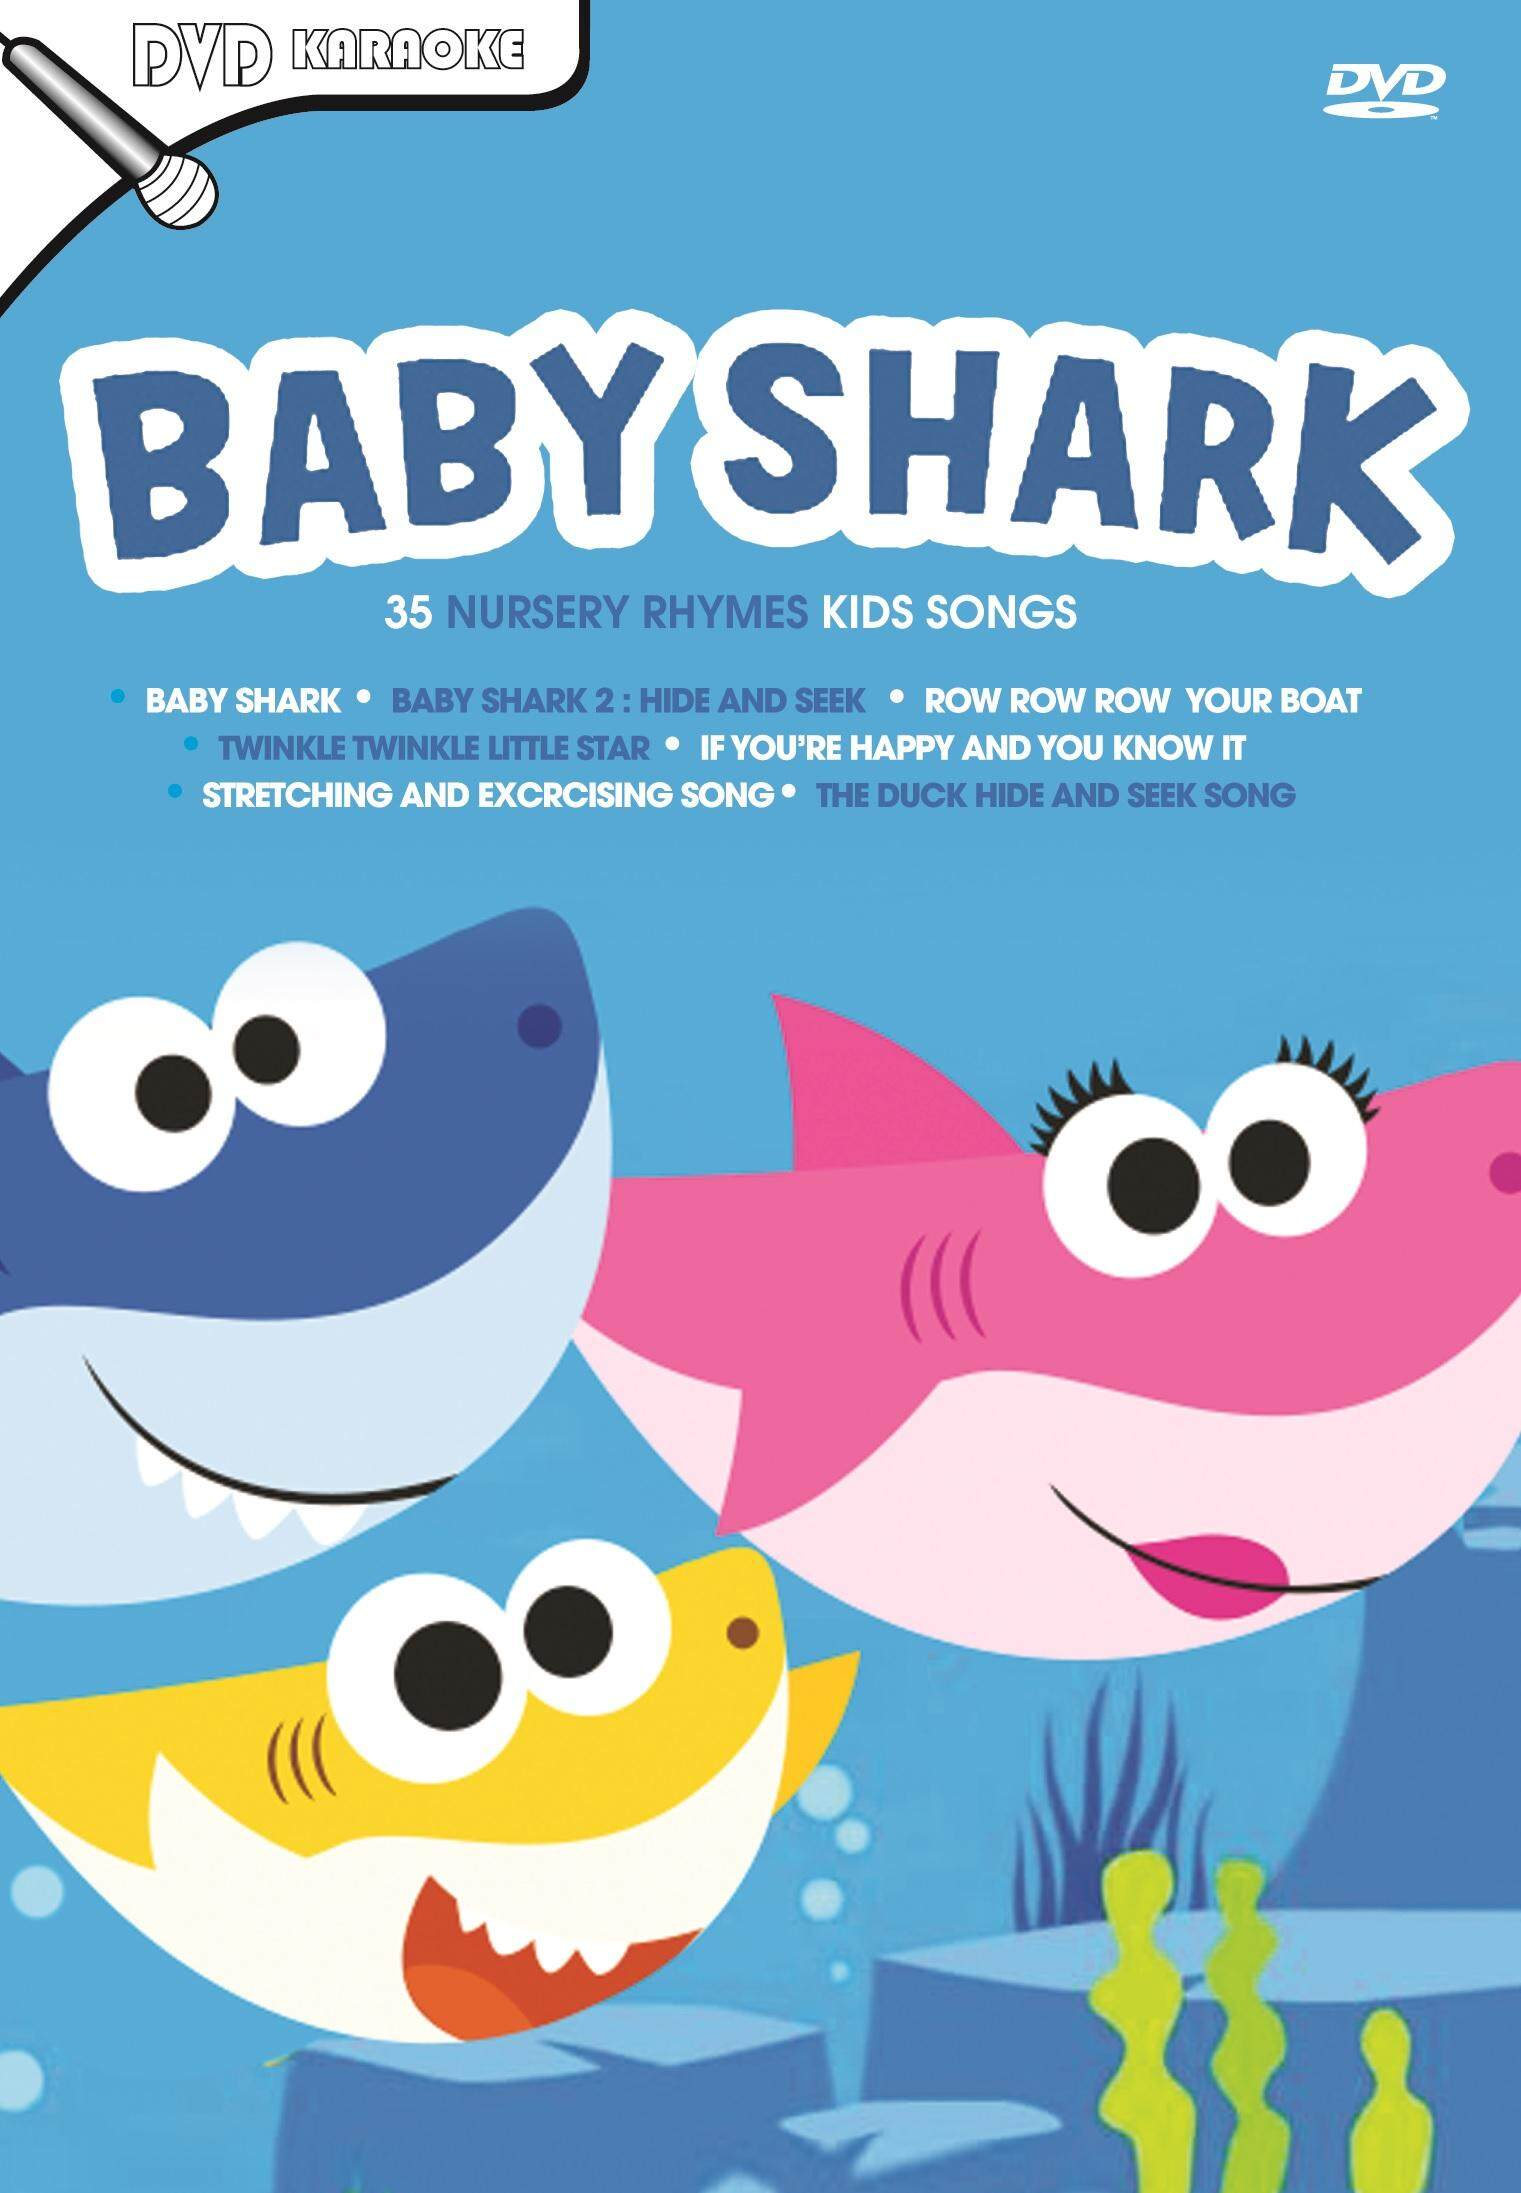 Baby Shark 35 Nursery Rhymes Kids Songs (dvd) By Ccjv69.